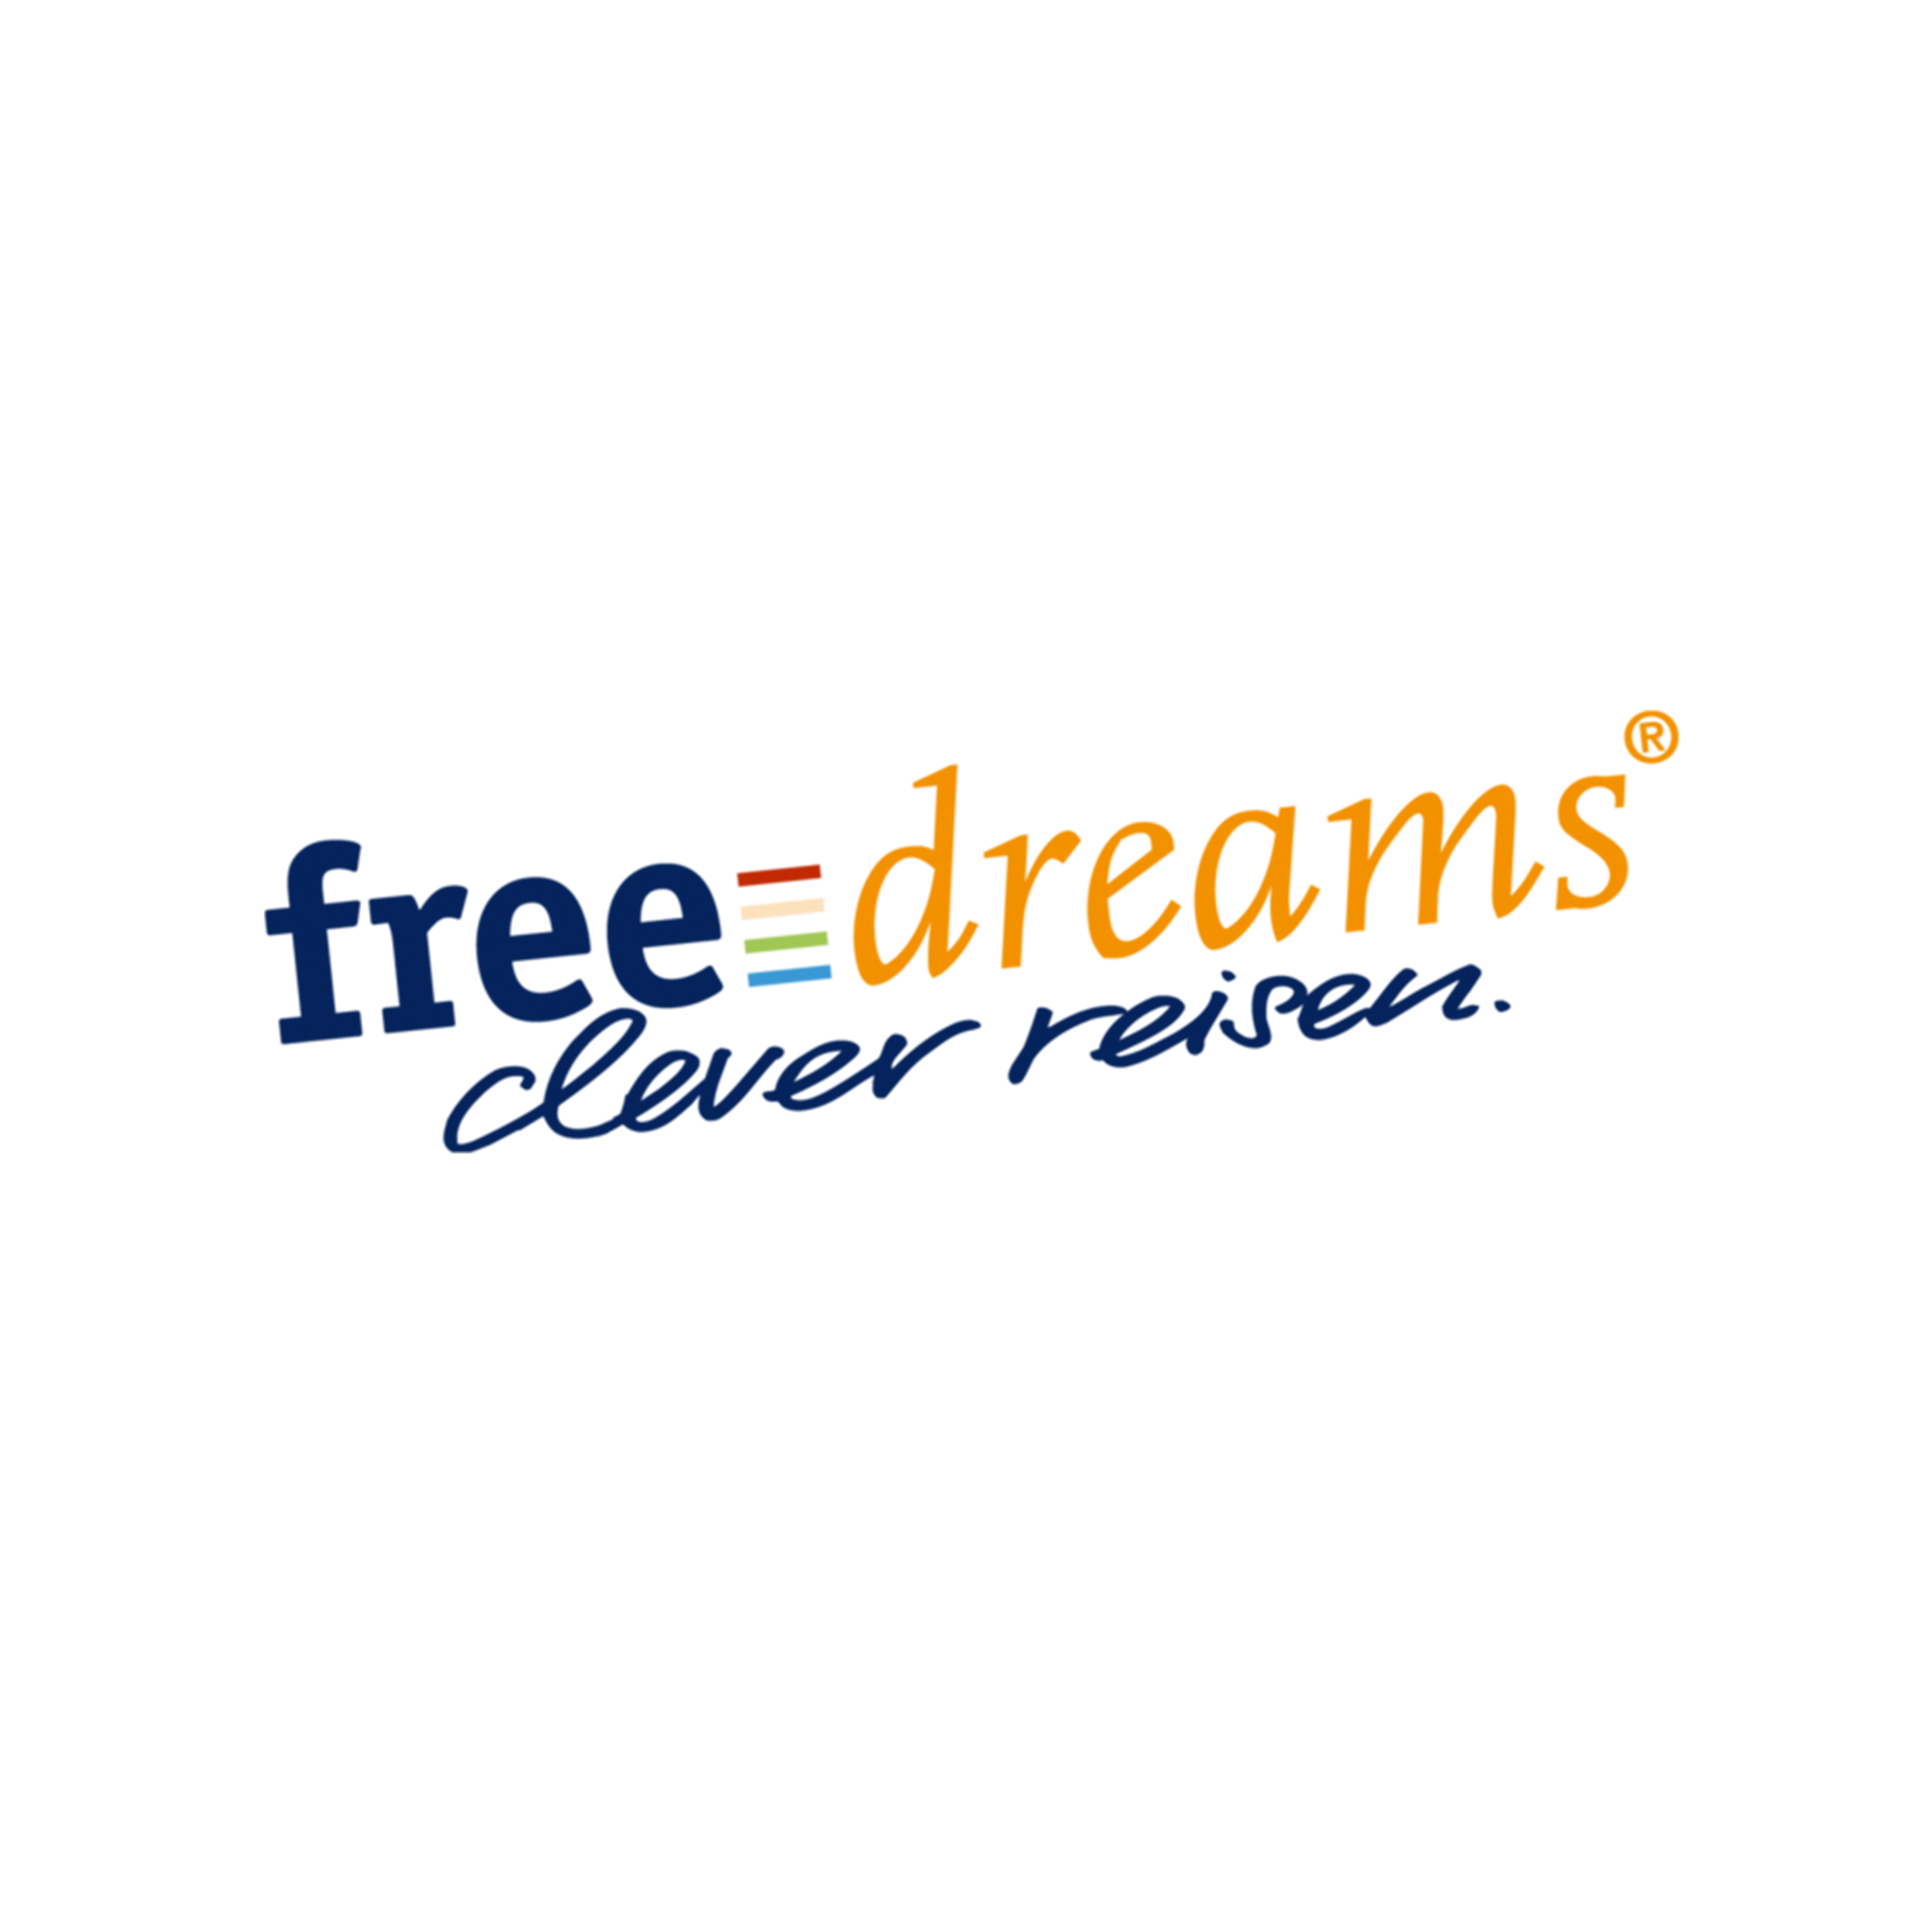 freedreams.png